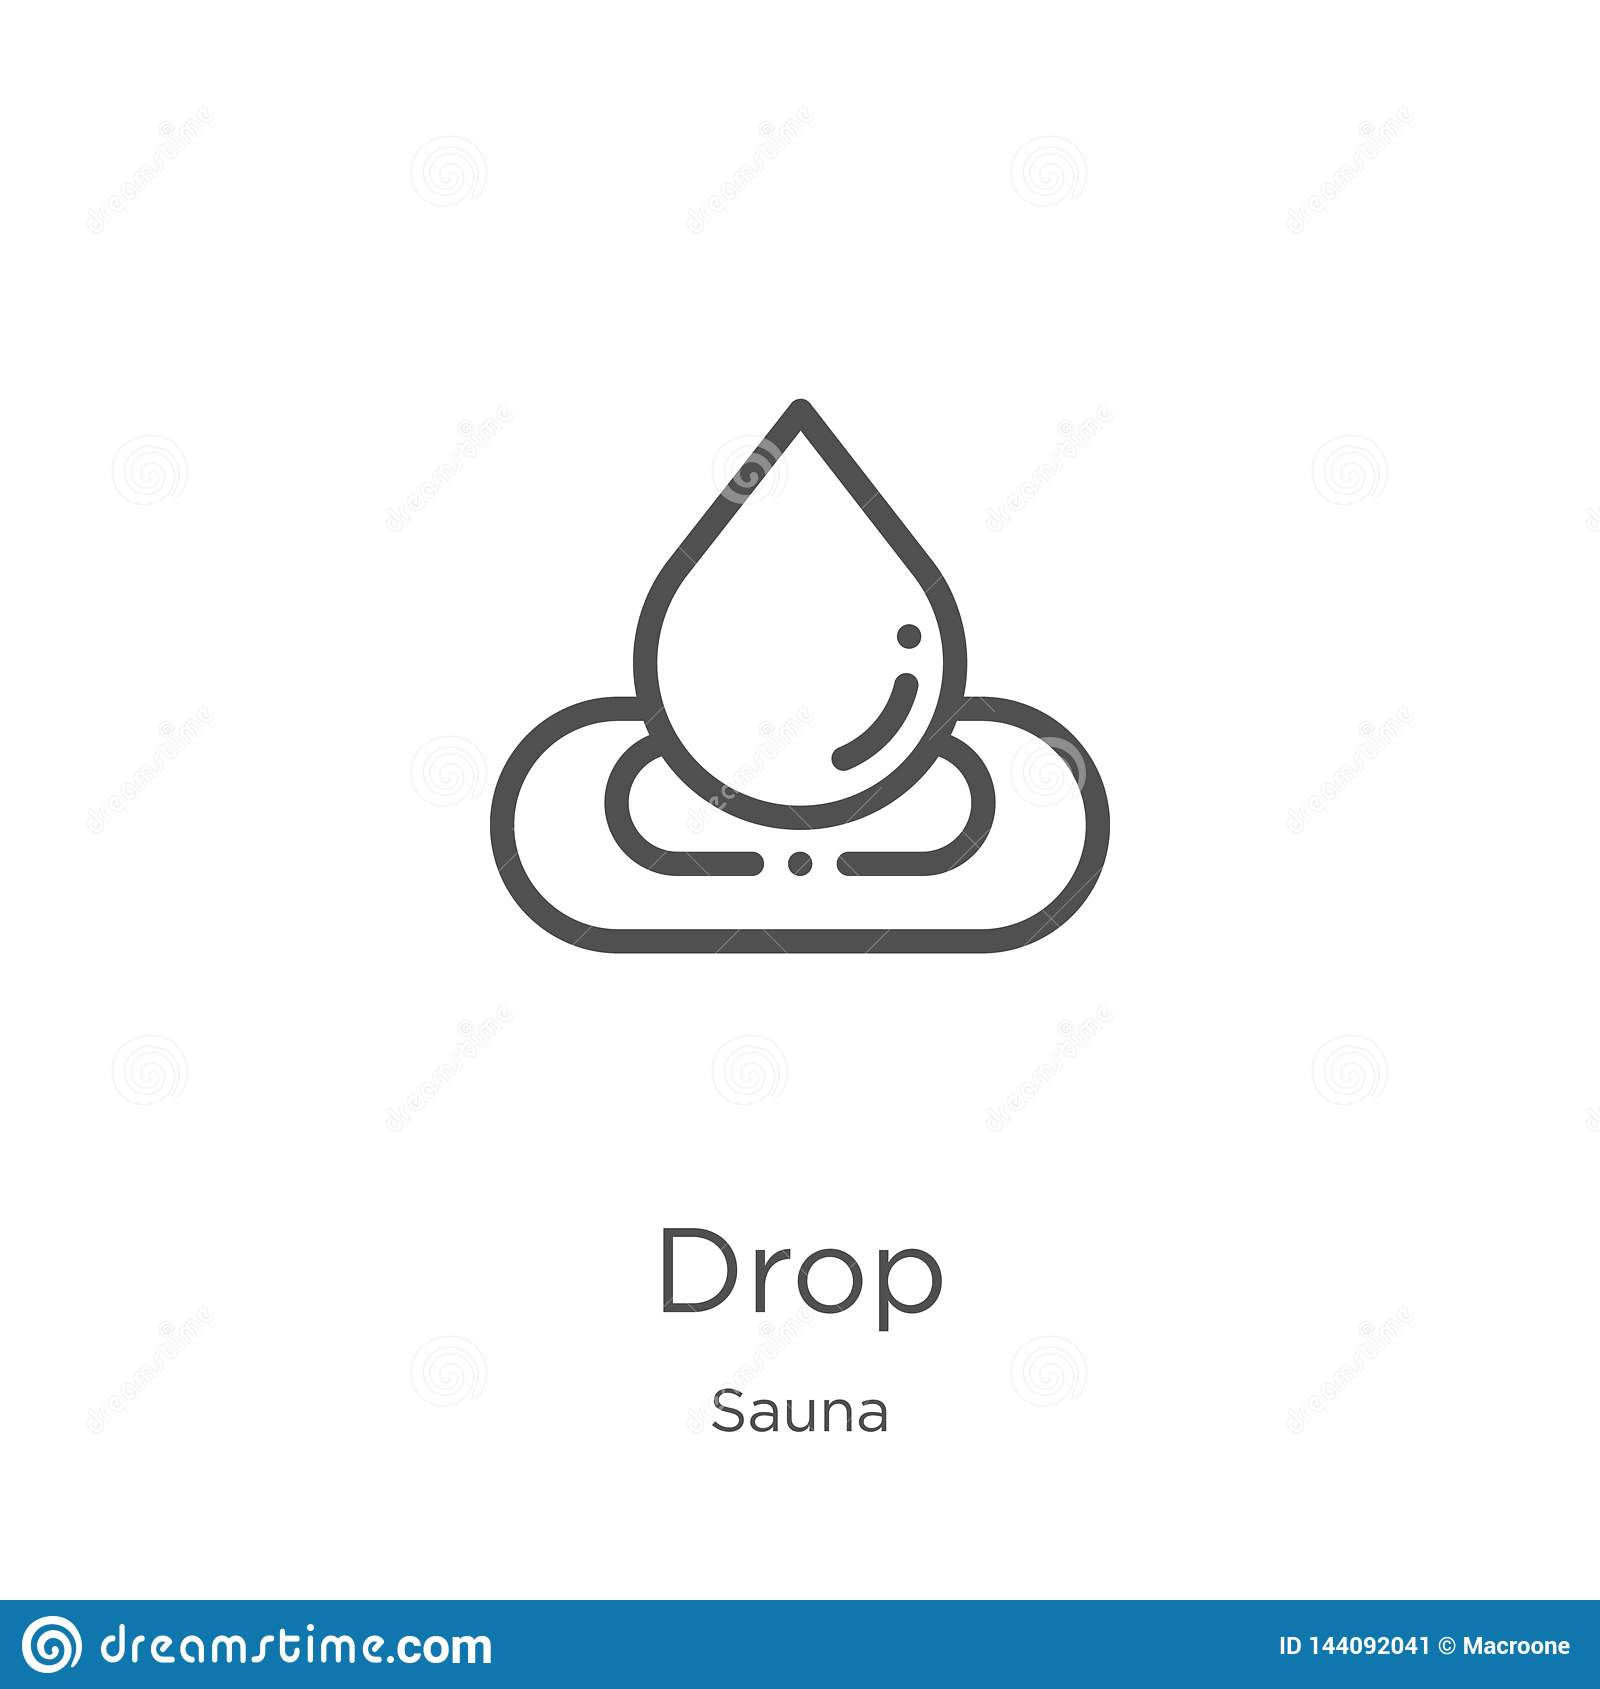 drop icon vector from sauna collection. Thin line drop outline icon vector illustration. Outline, thin line drop icon for website